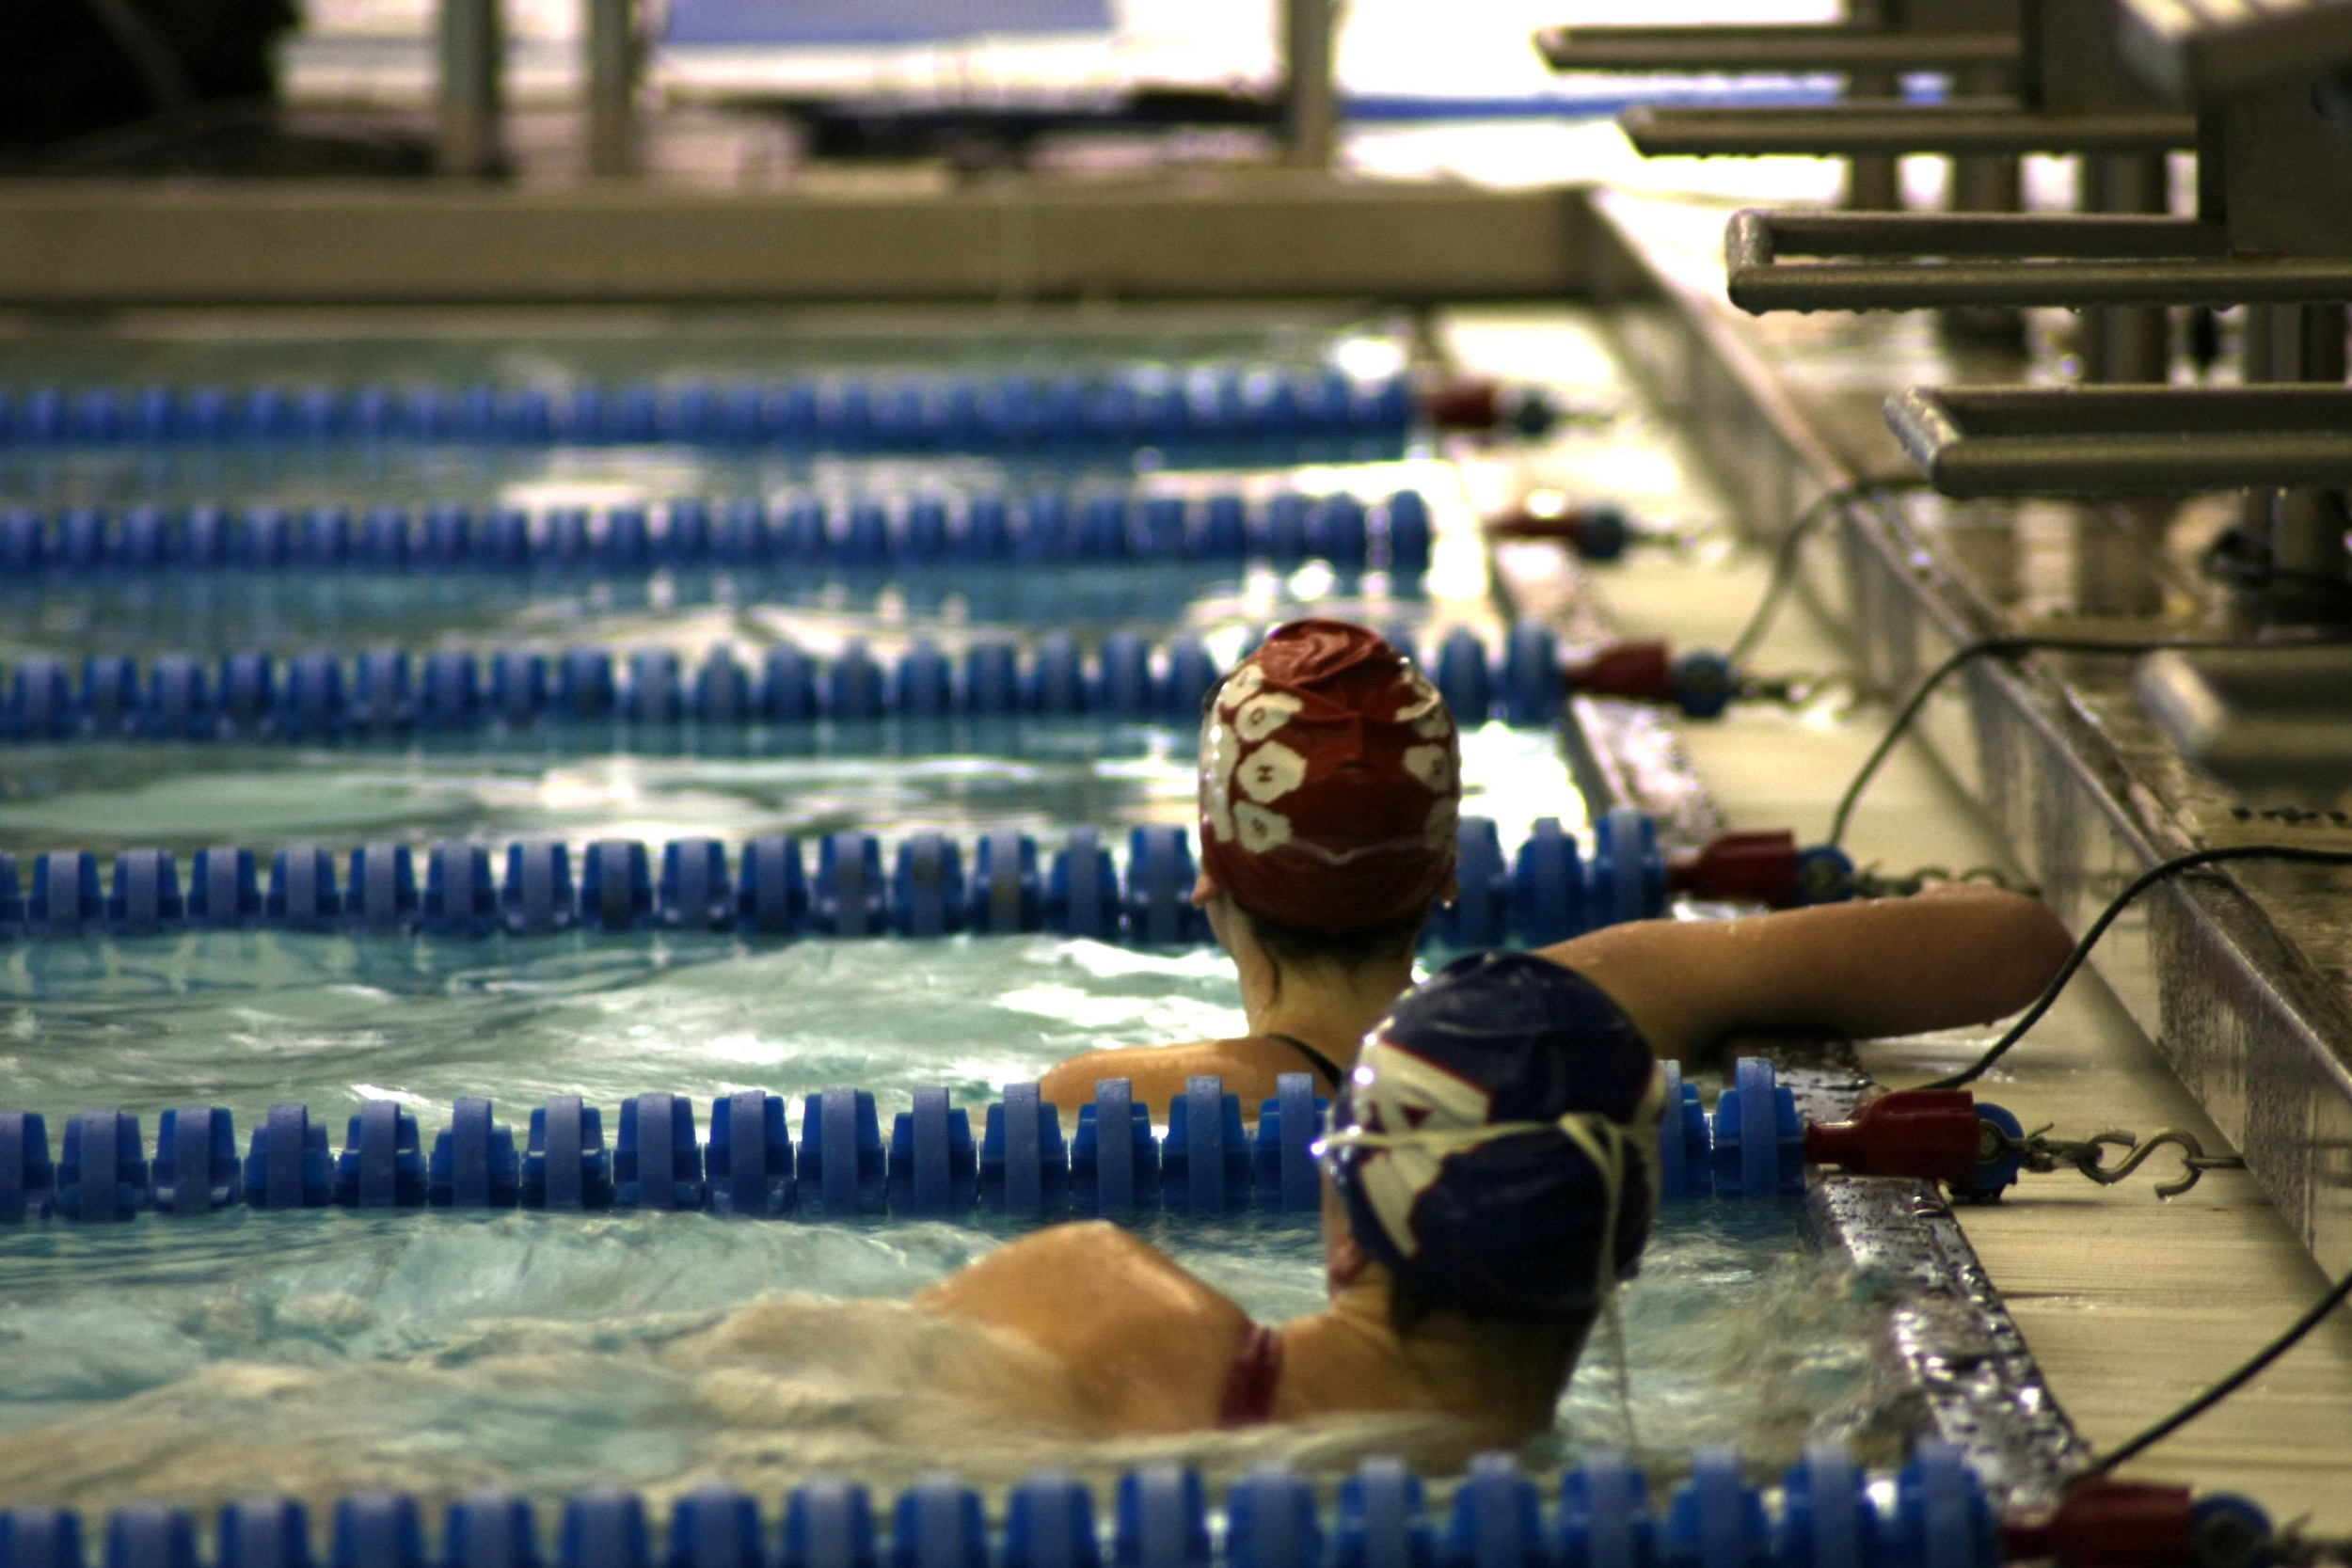 This is a picture I took just Tuesday.  There was a swim meet going on and I decided to check out my sports photography skills.  I shot this on my Canon 40 D with a 70-300mm telephoto lens.  Lighting was really dim in the pool area so I had to shoot on a lower shutter speed.  I was running into a lot of camera shake but managed to capture this shot at the end of one of the meets.  I like the depth of field and how the background drops off after the swimmers.